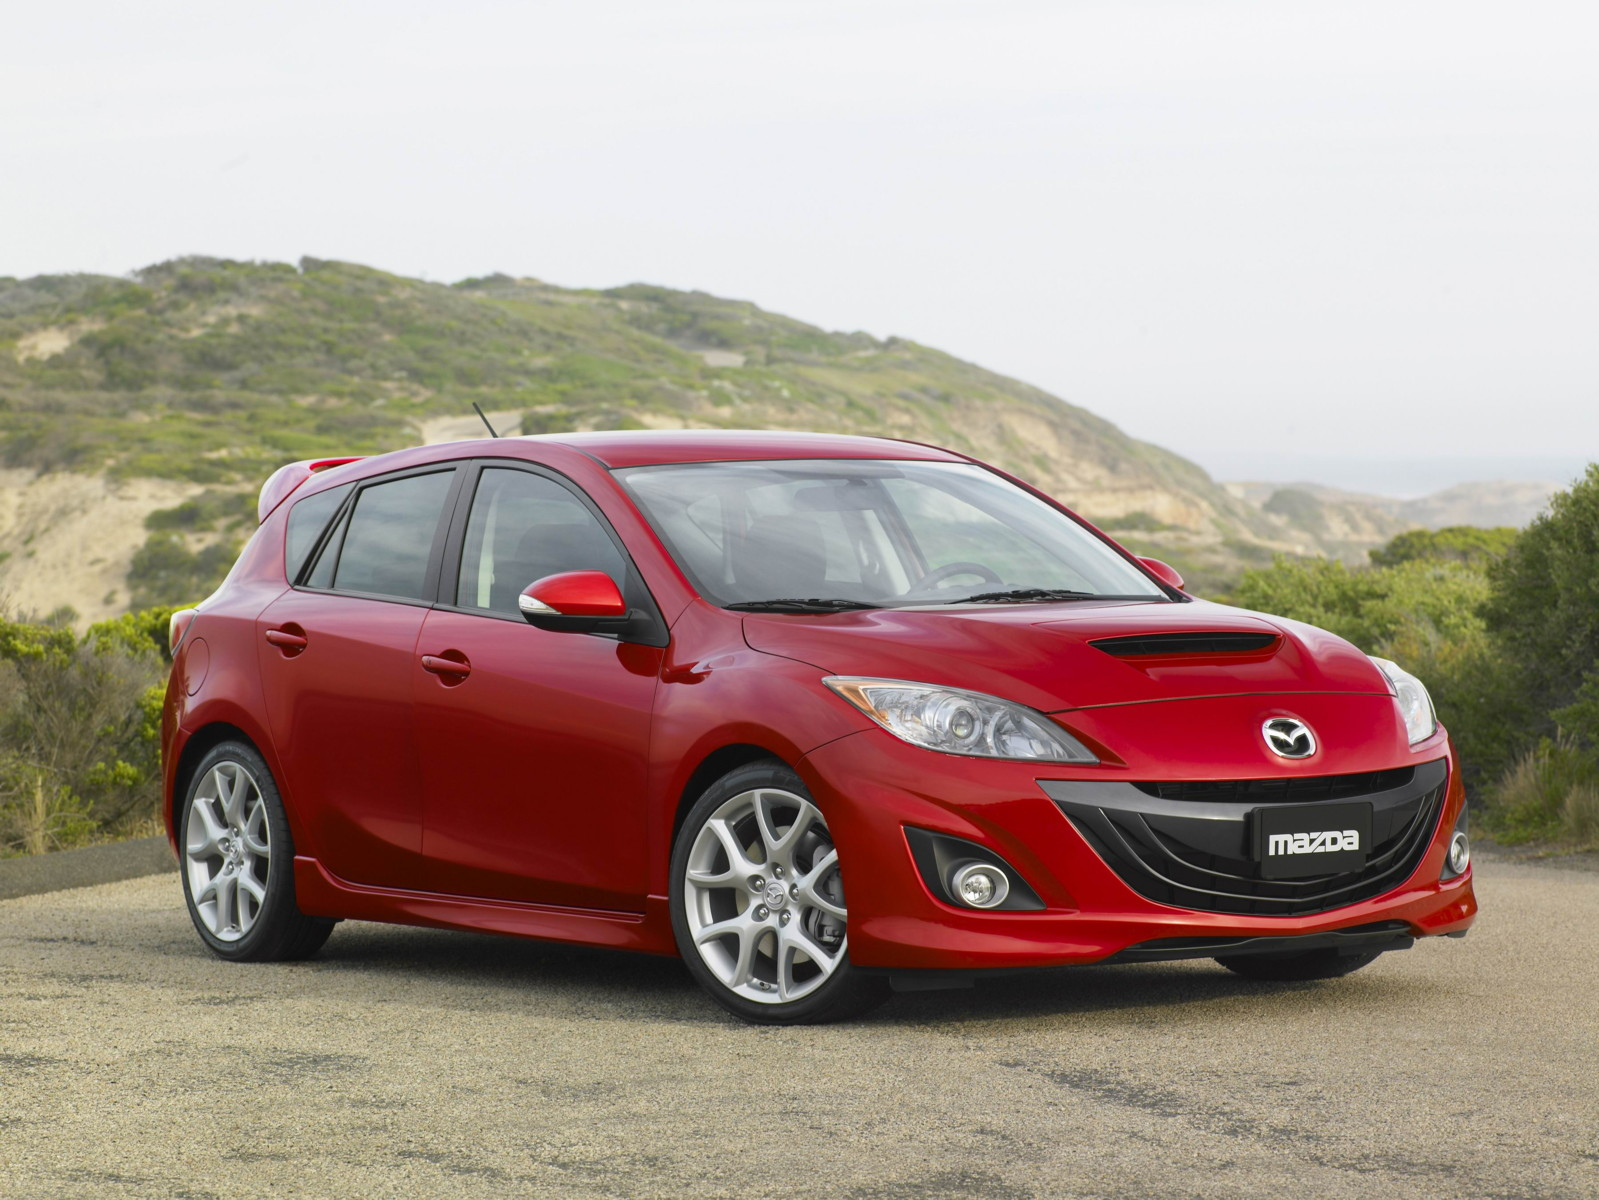 Mazdaspeed3 For Sale >> 2010 Mazda Mazda3 Review Ratings Specs Prices And Photos